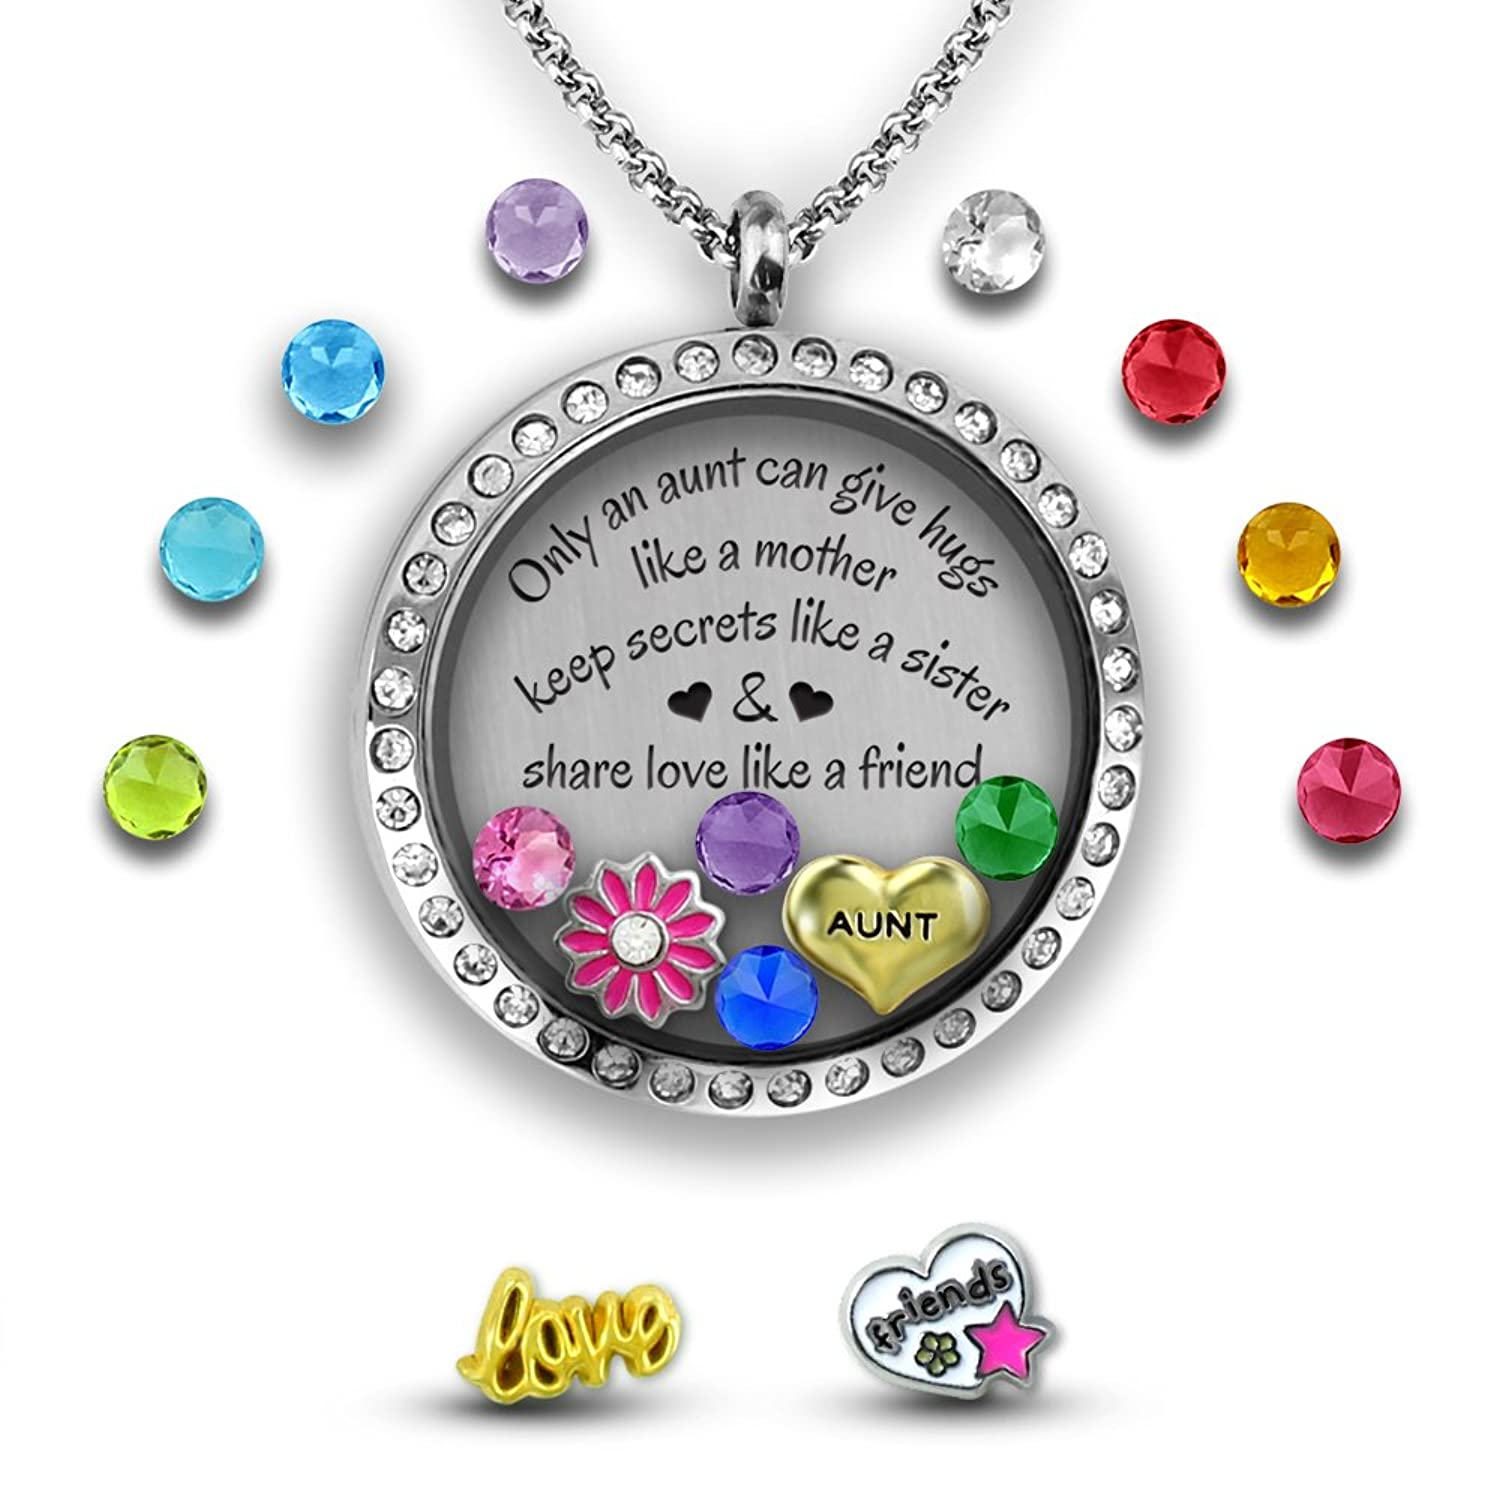 aunt necklace sterling time on friends card silver patience dogeared message pearl with set gifts family bezel reading